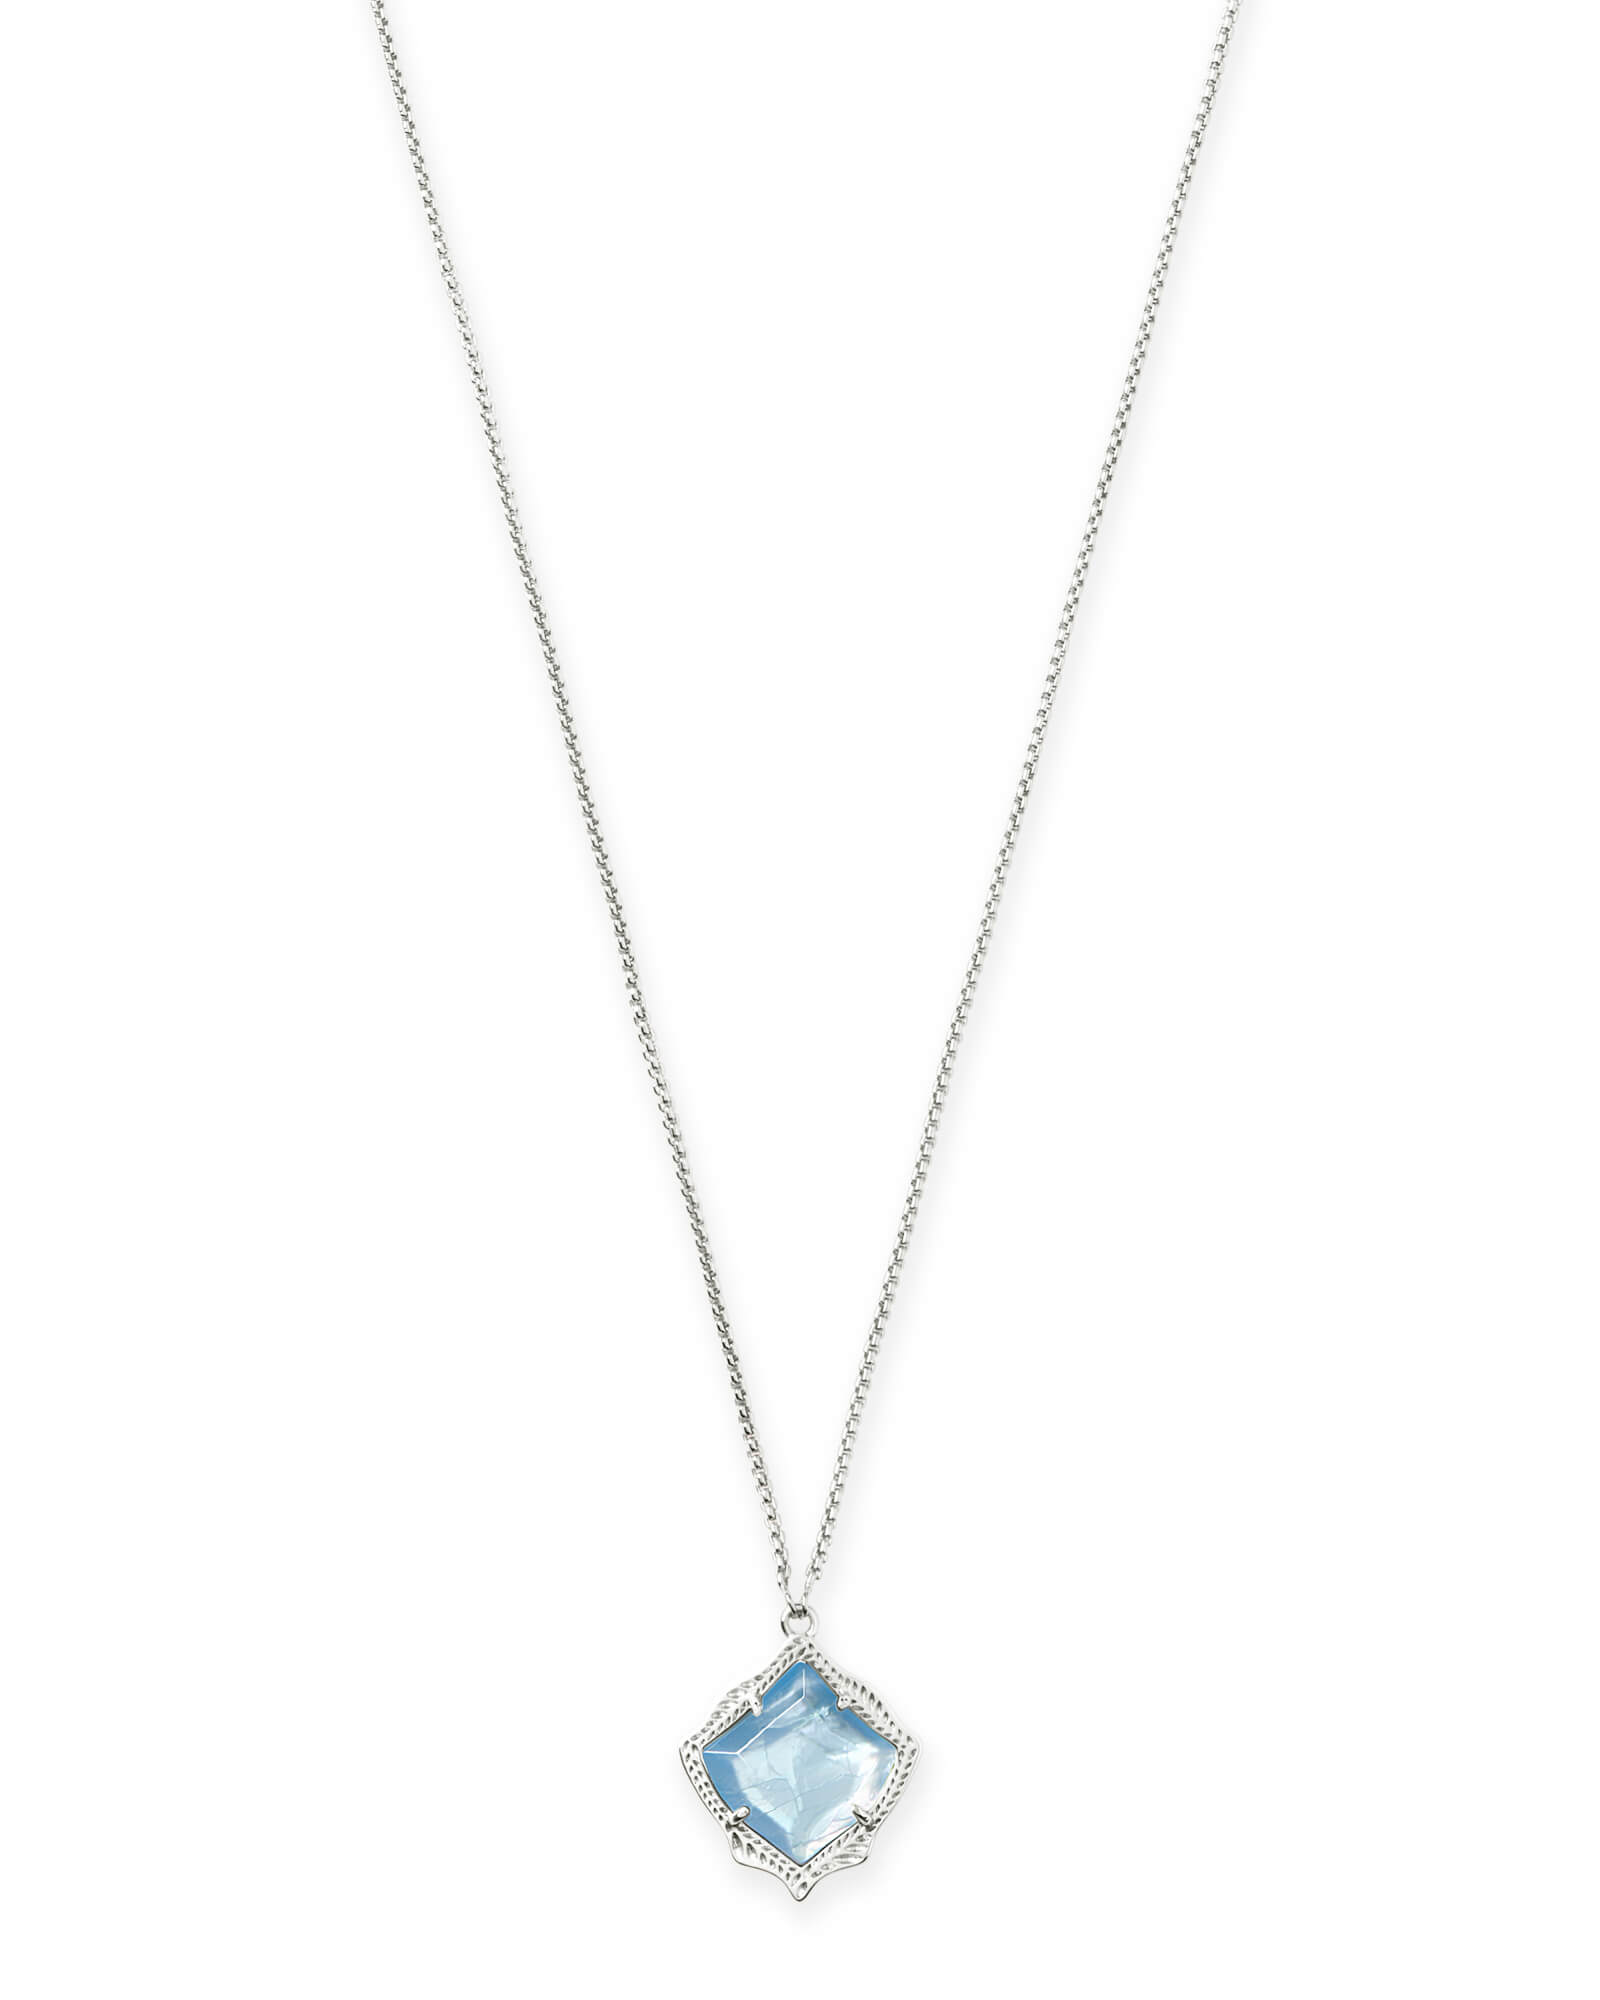 Kacey Bright Silver Long Pendant Necklace in Sky Blue Illusion